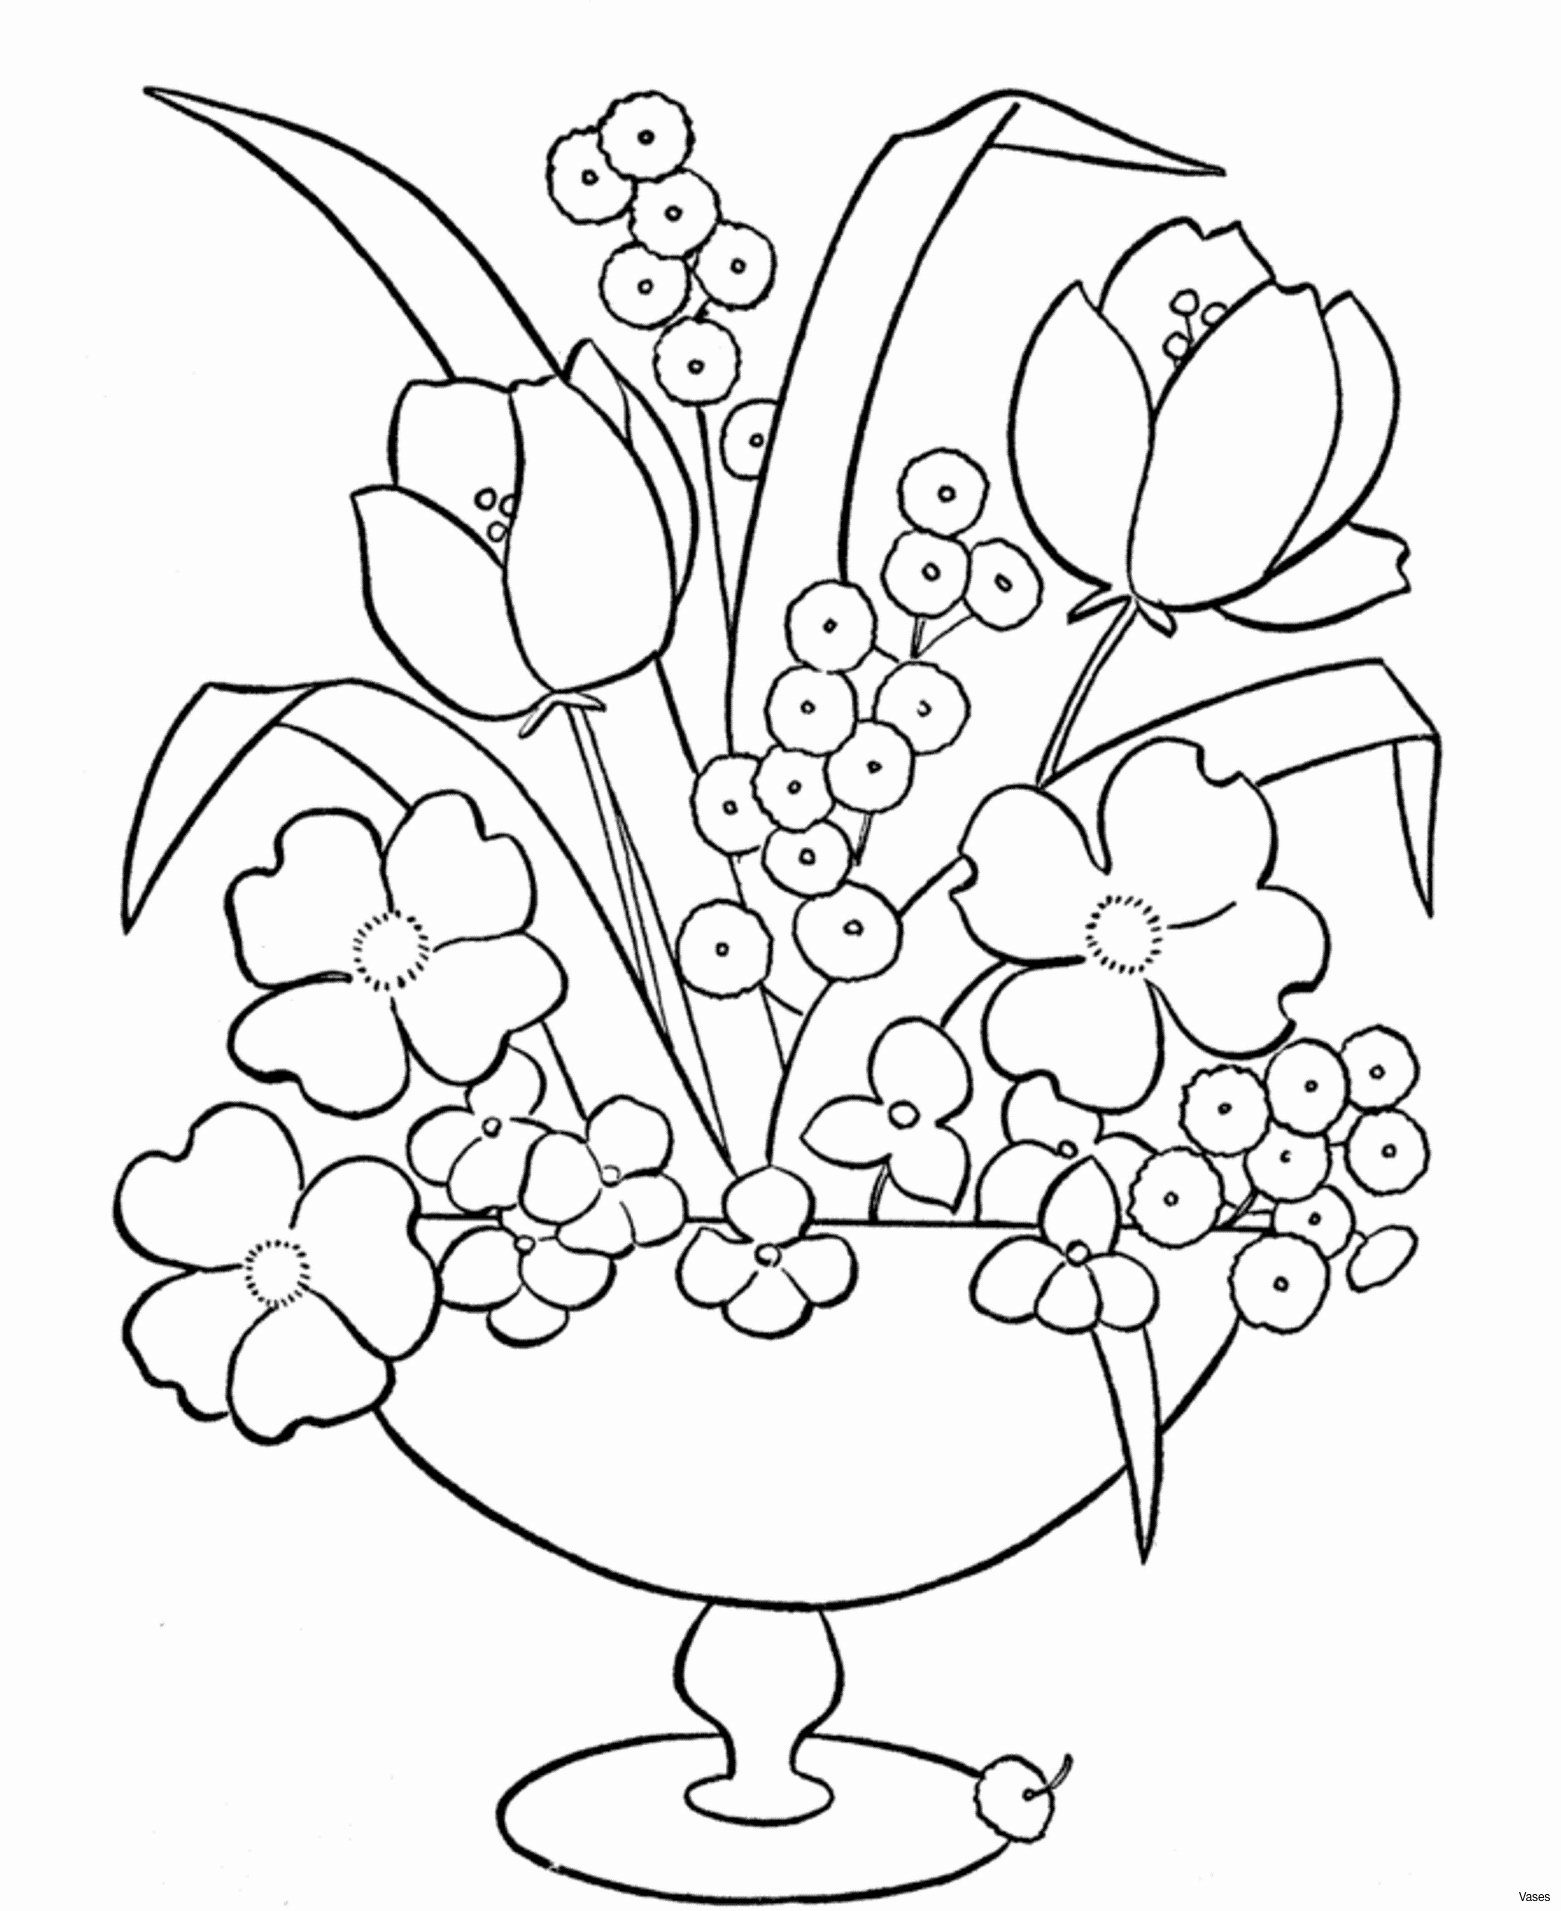 colouring pages flowers in a vase flower vase coloring pages at getcoloringscom free colouring a flowers in vase pages